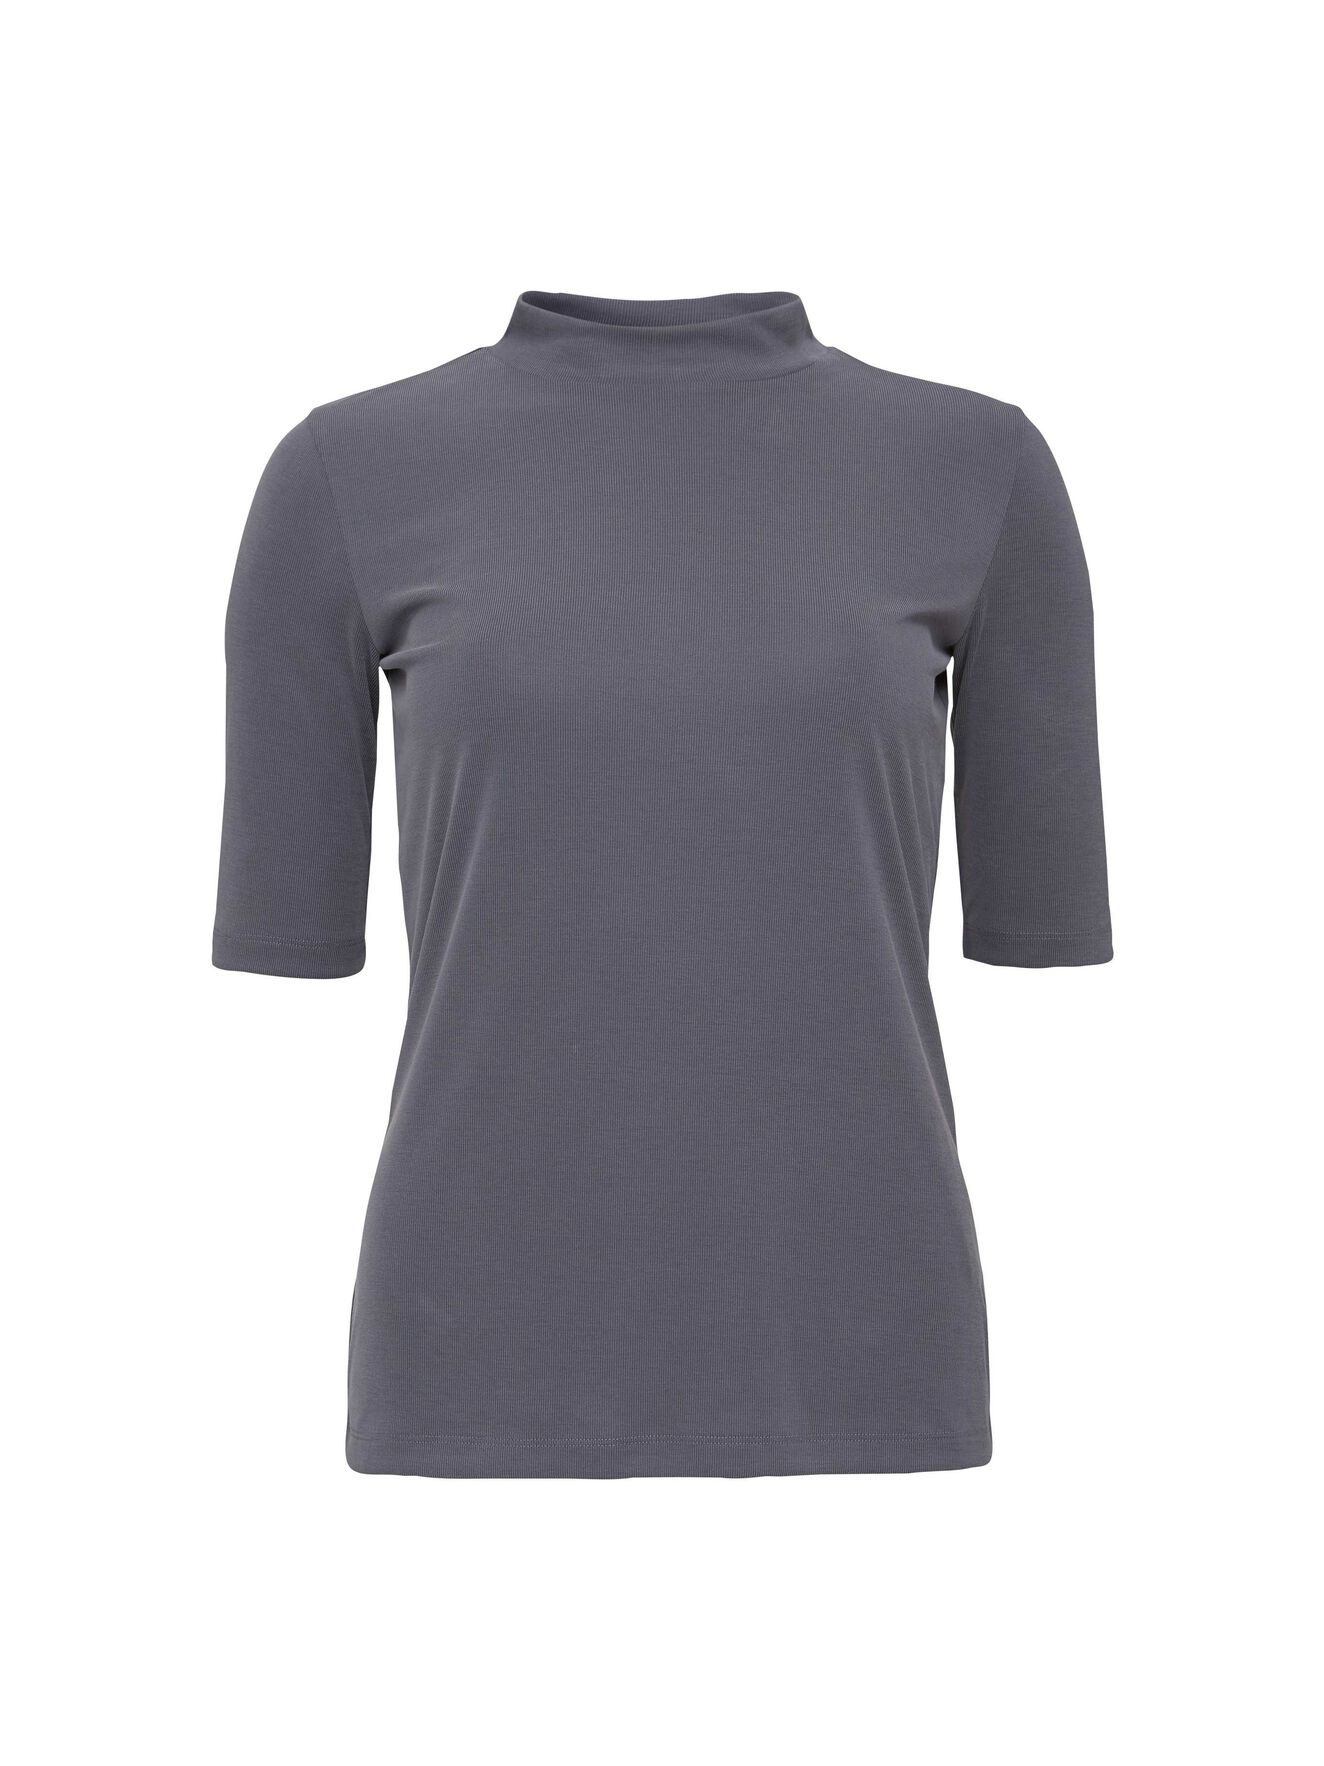 Stun T-Shirt in Odyssey Grey from Tiger of Sweden